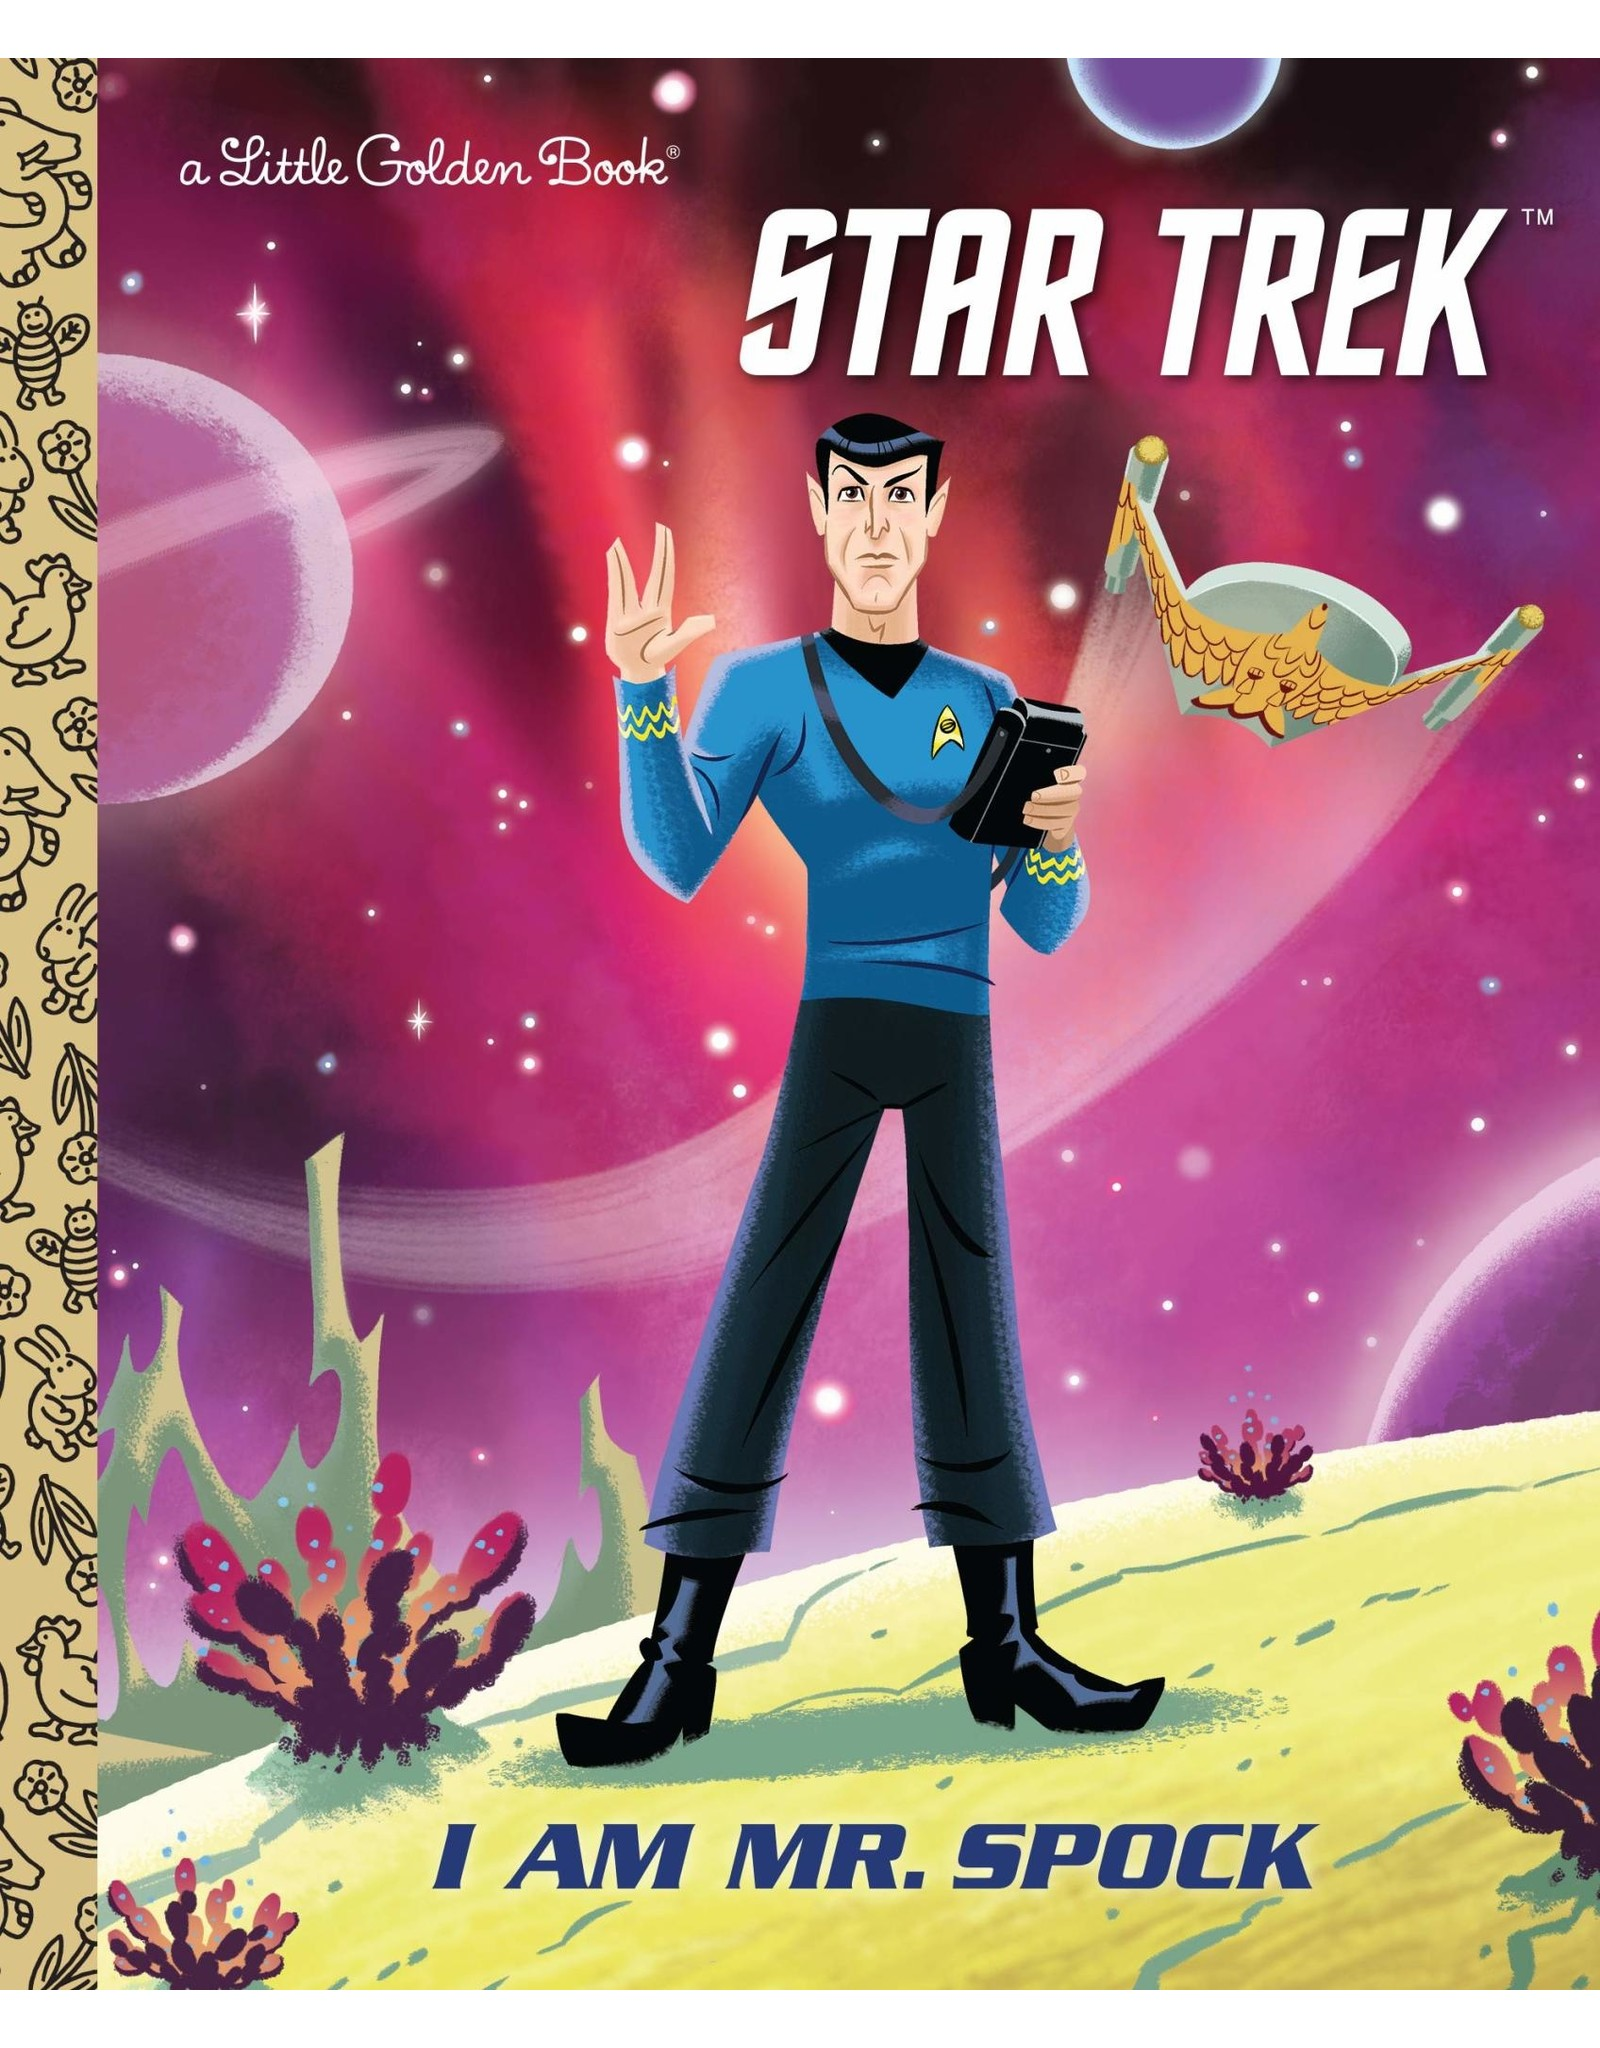 I AM MR. SPOCK (STAR TREK) LITTLE GOLDEN BOOK